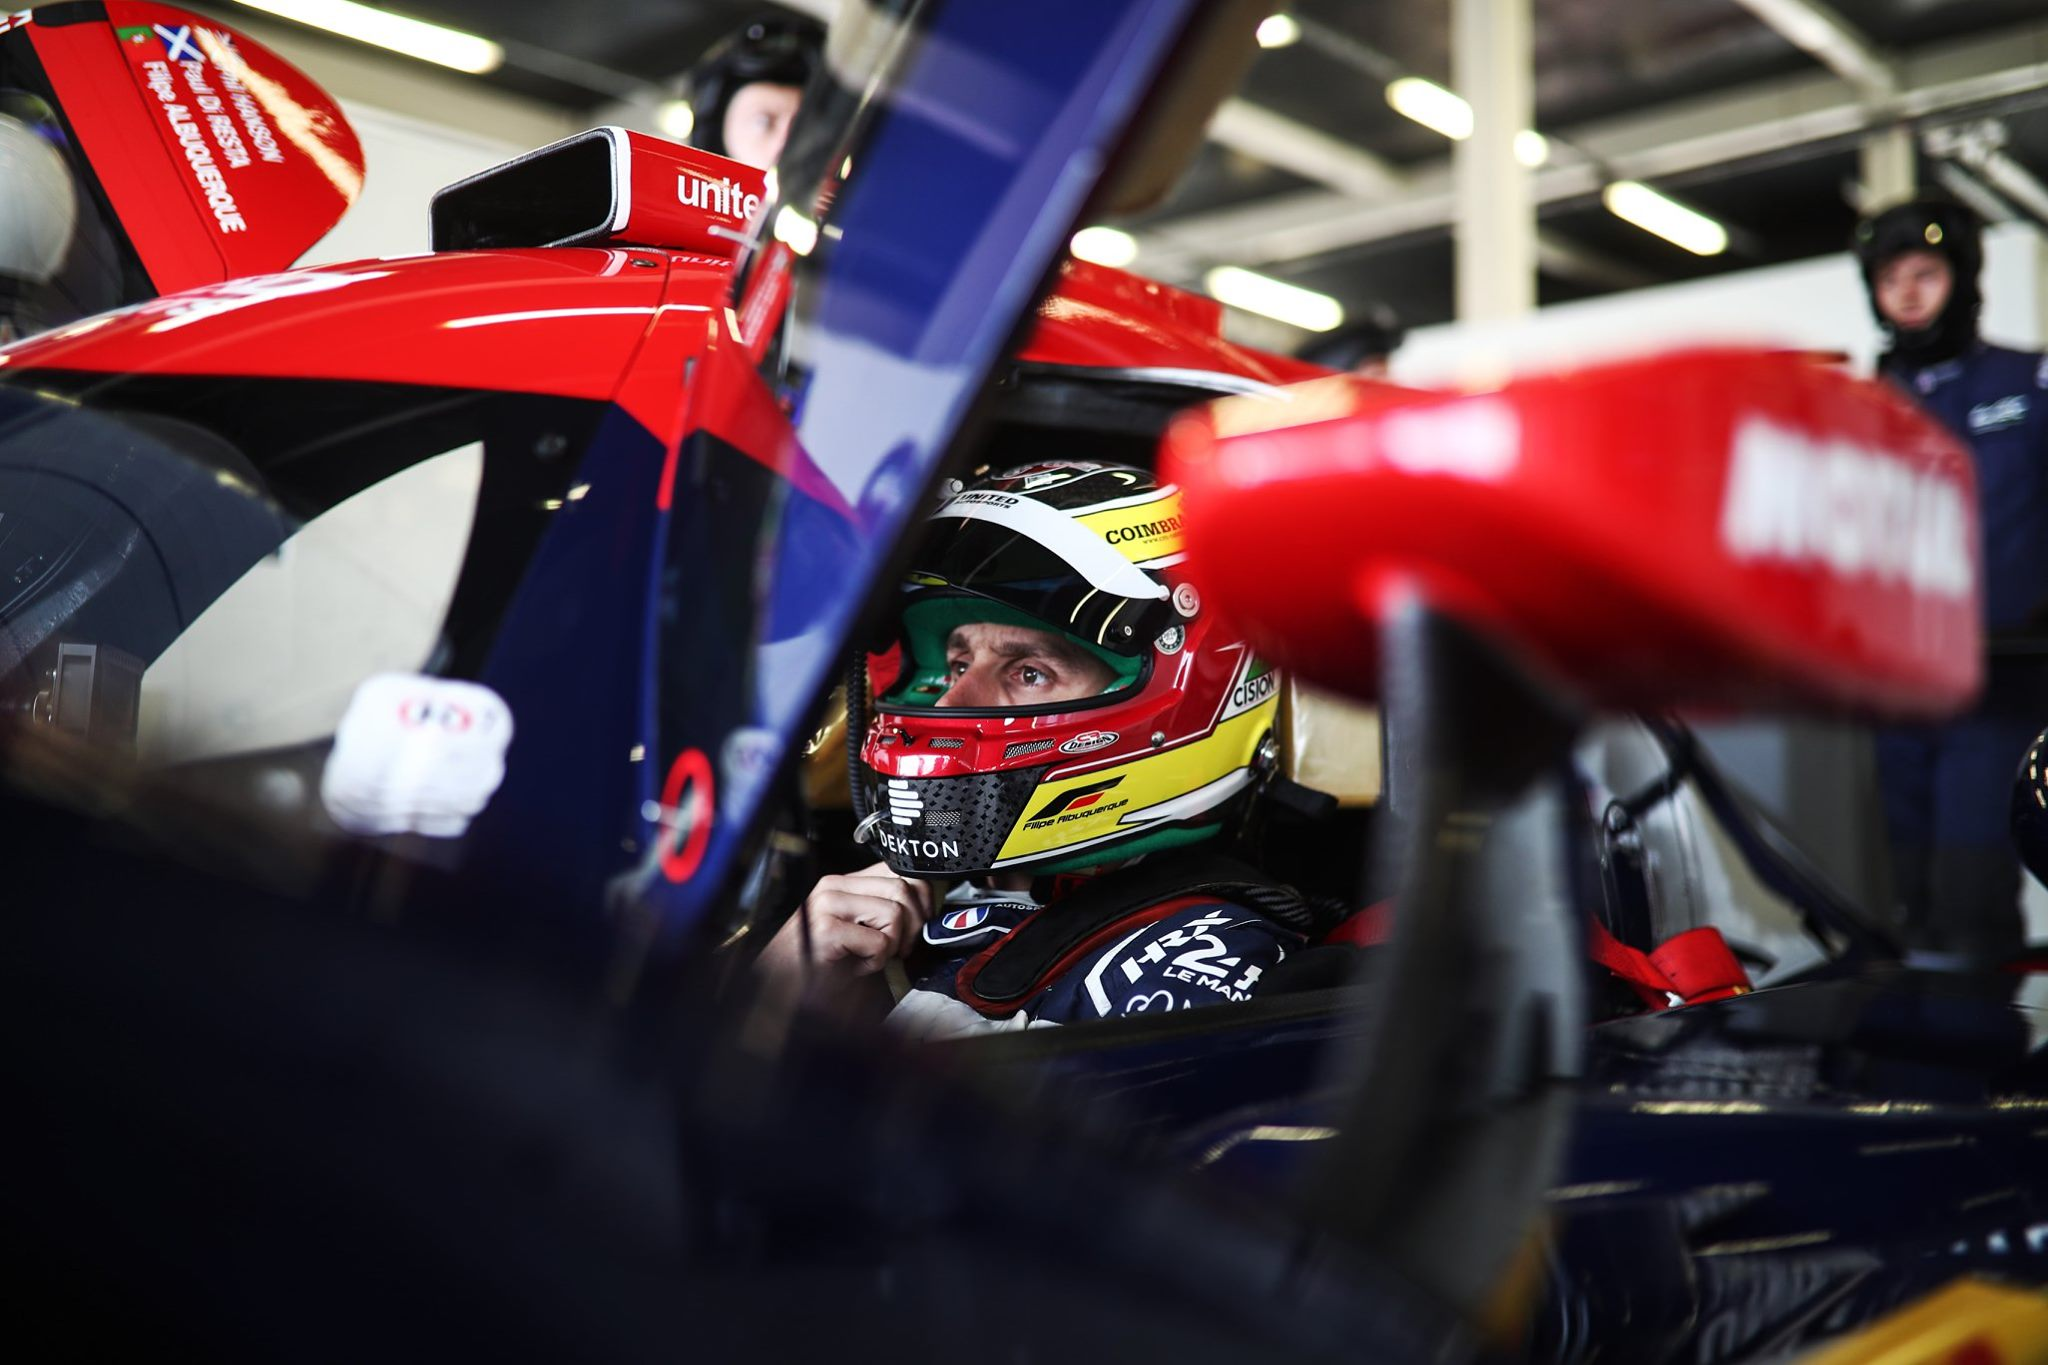 What's it like, driving an Oreca 07 LMP2 car? Is it comparable to the DTM car your raced in the past?